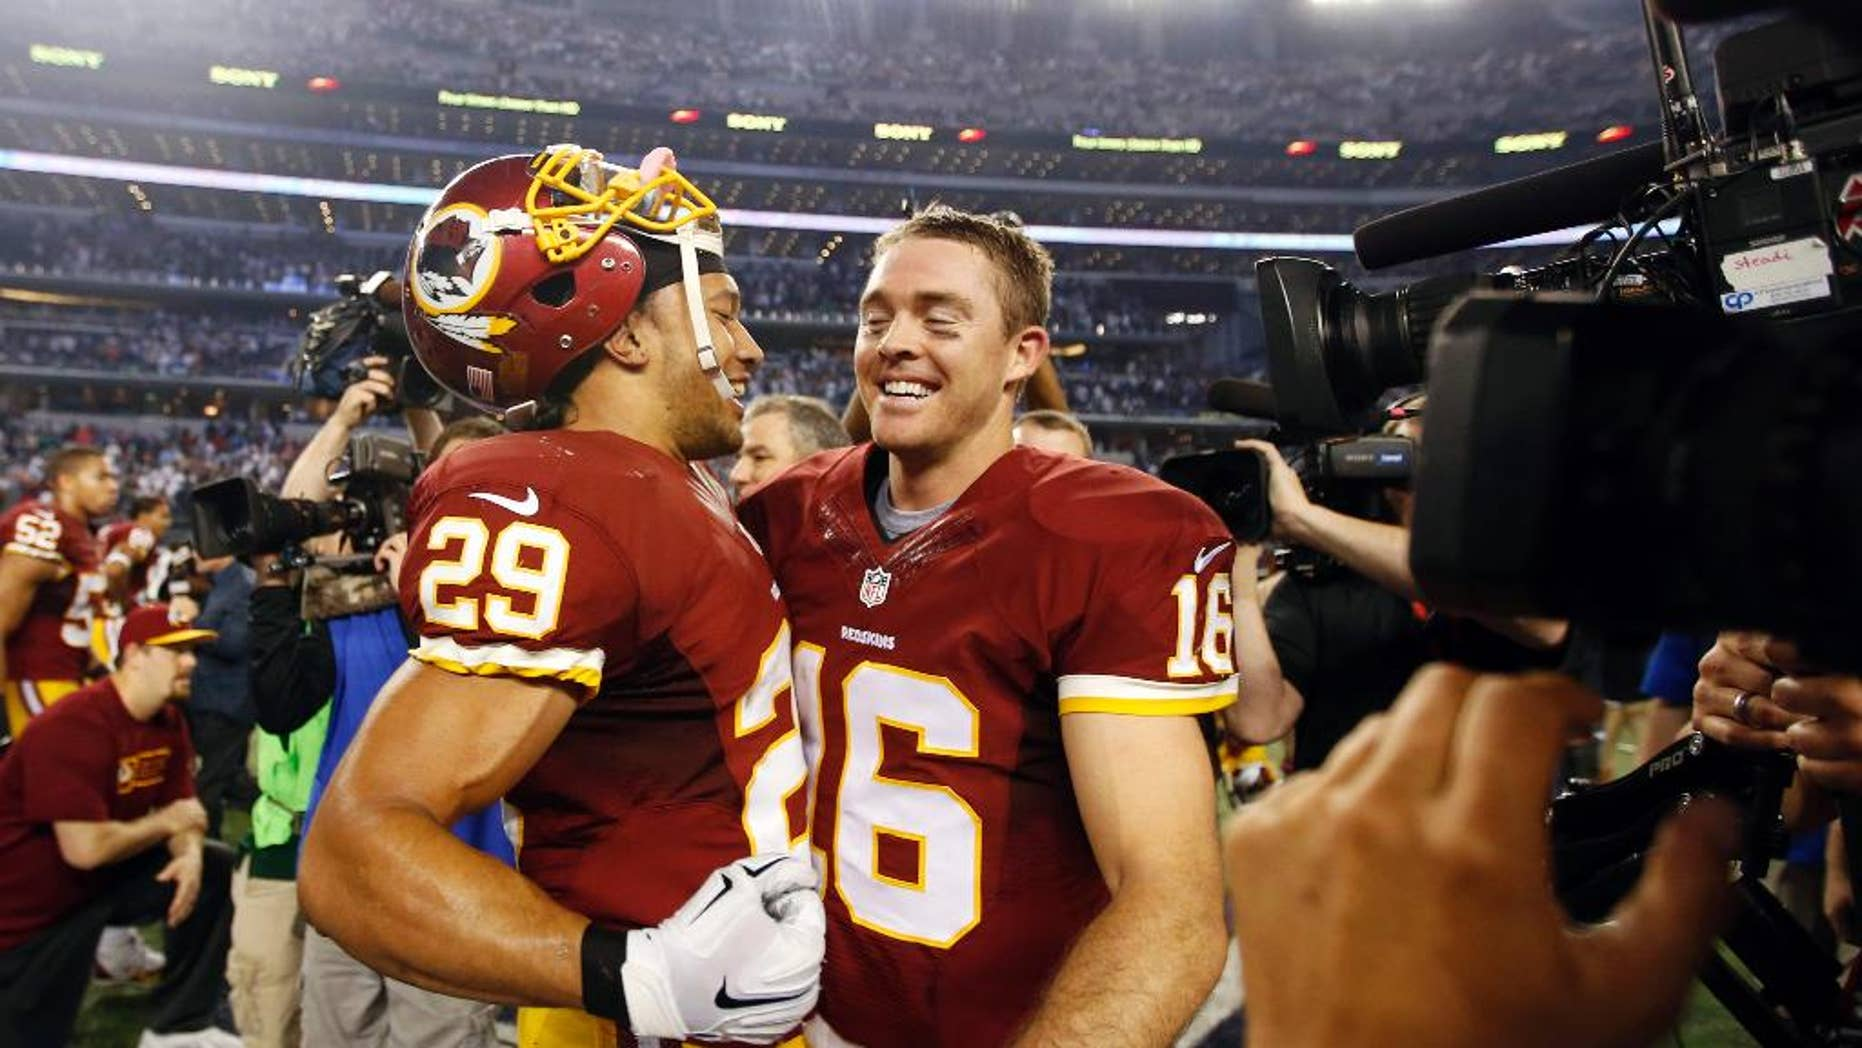 Washington Redskins' Roy Helu (29) and quarterback Colt McCoy (16) celebrate after an NFL football game against the Dallas Cowboys, Monday, Oct. 27, 2014, in Arlington, Texas. Washington won in overtime 20-17. (AP Photo/Tim Sharp)